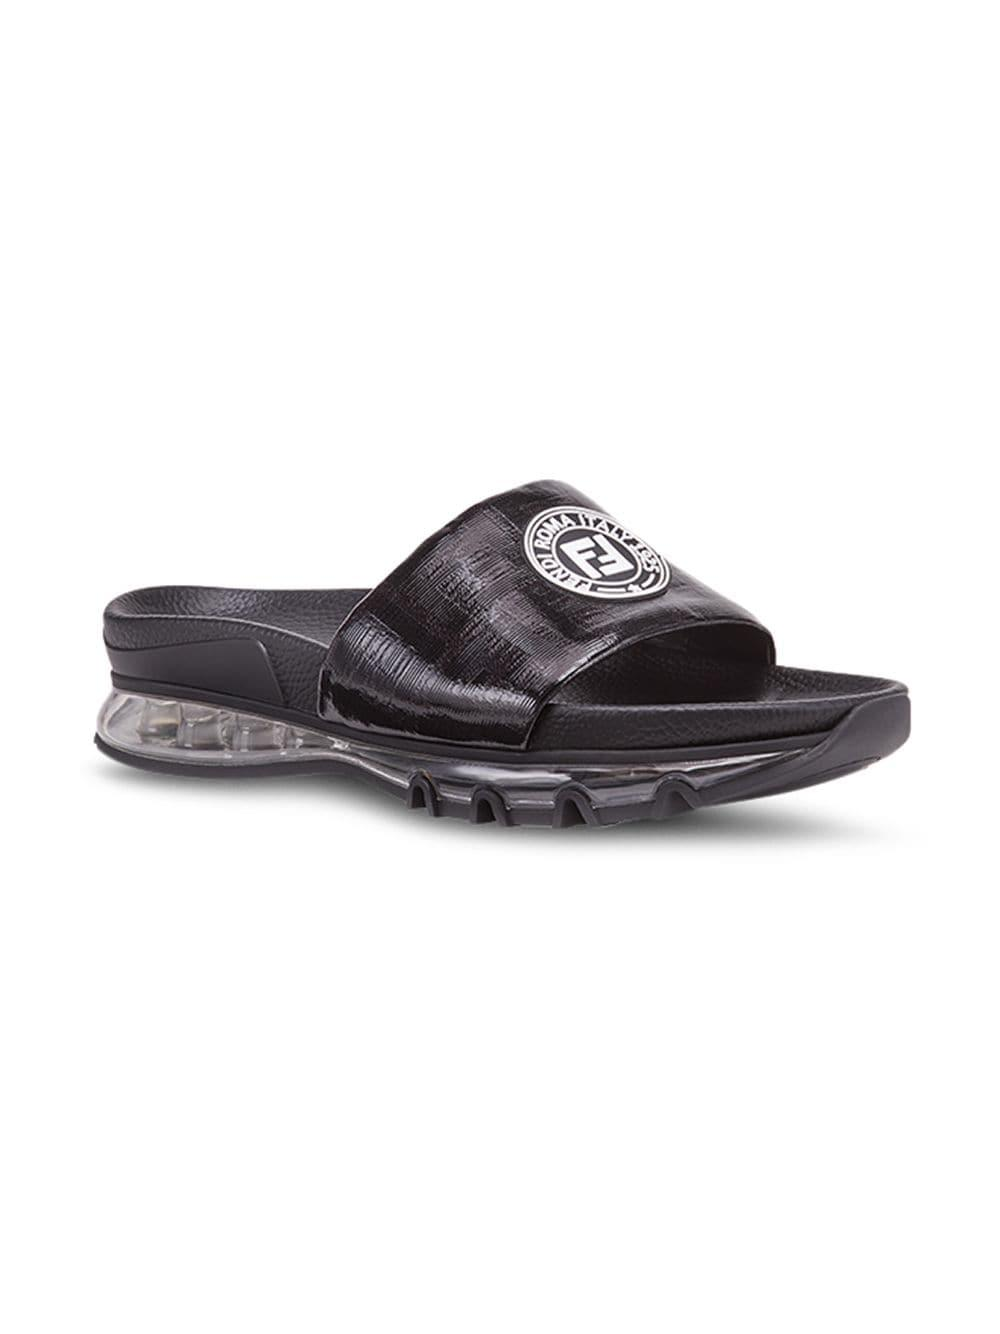 2c205f96c469 Fendi - Black Logo-patch Sandals for Men - Lyst. View fullscreen